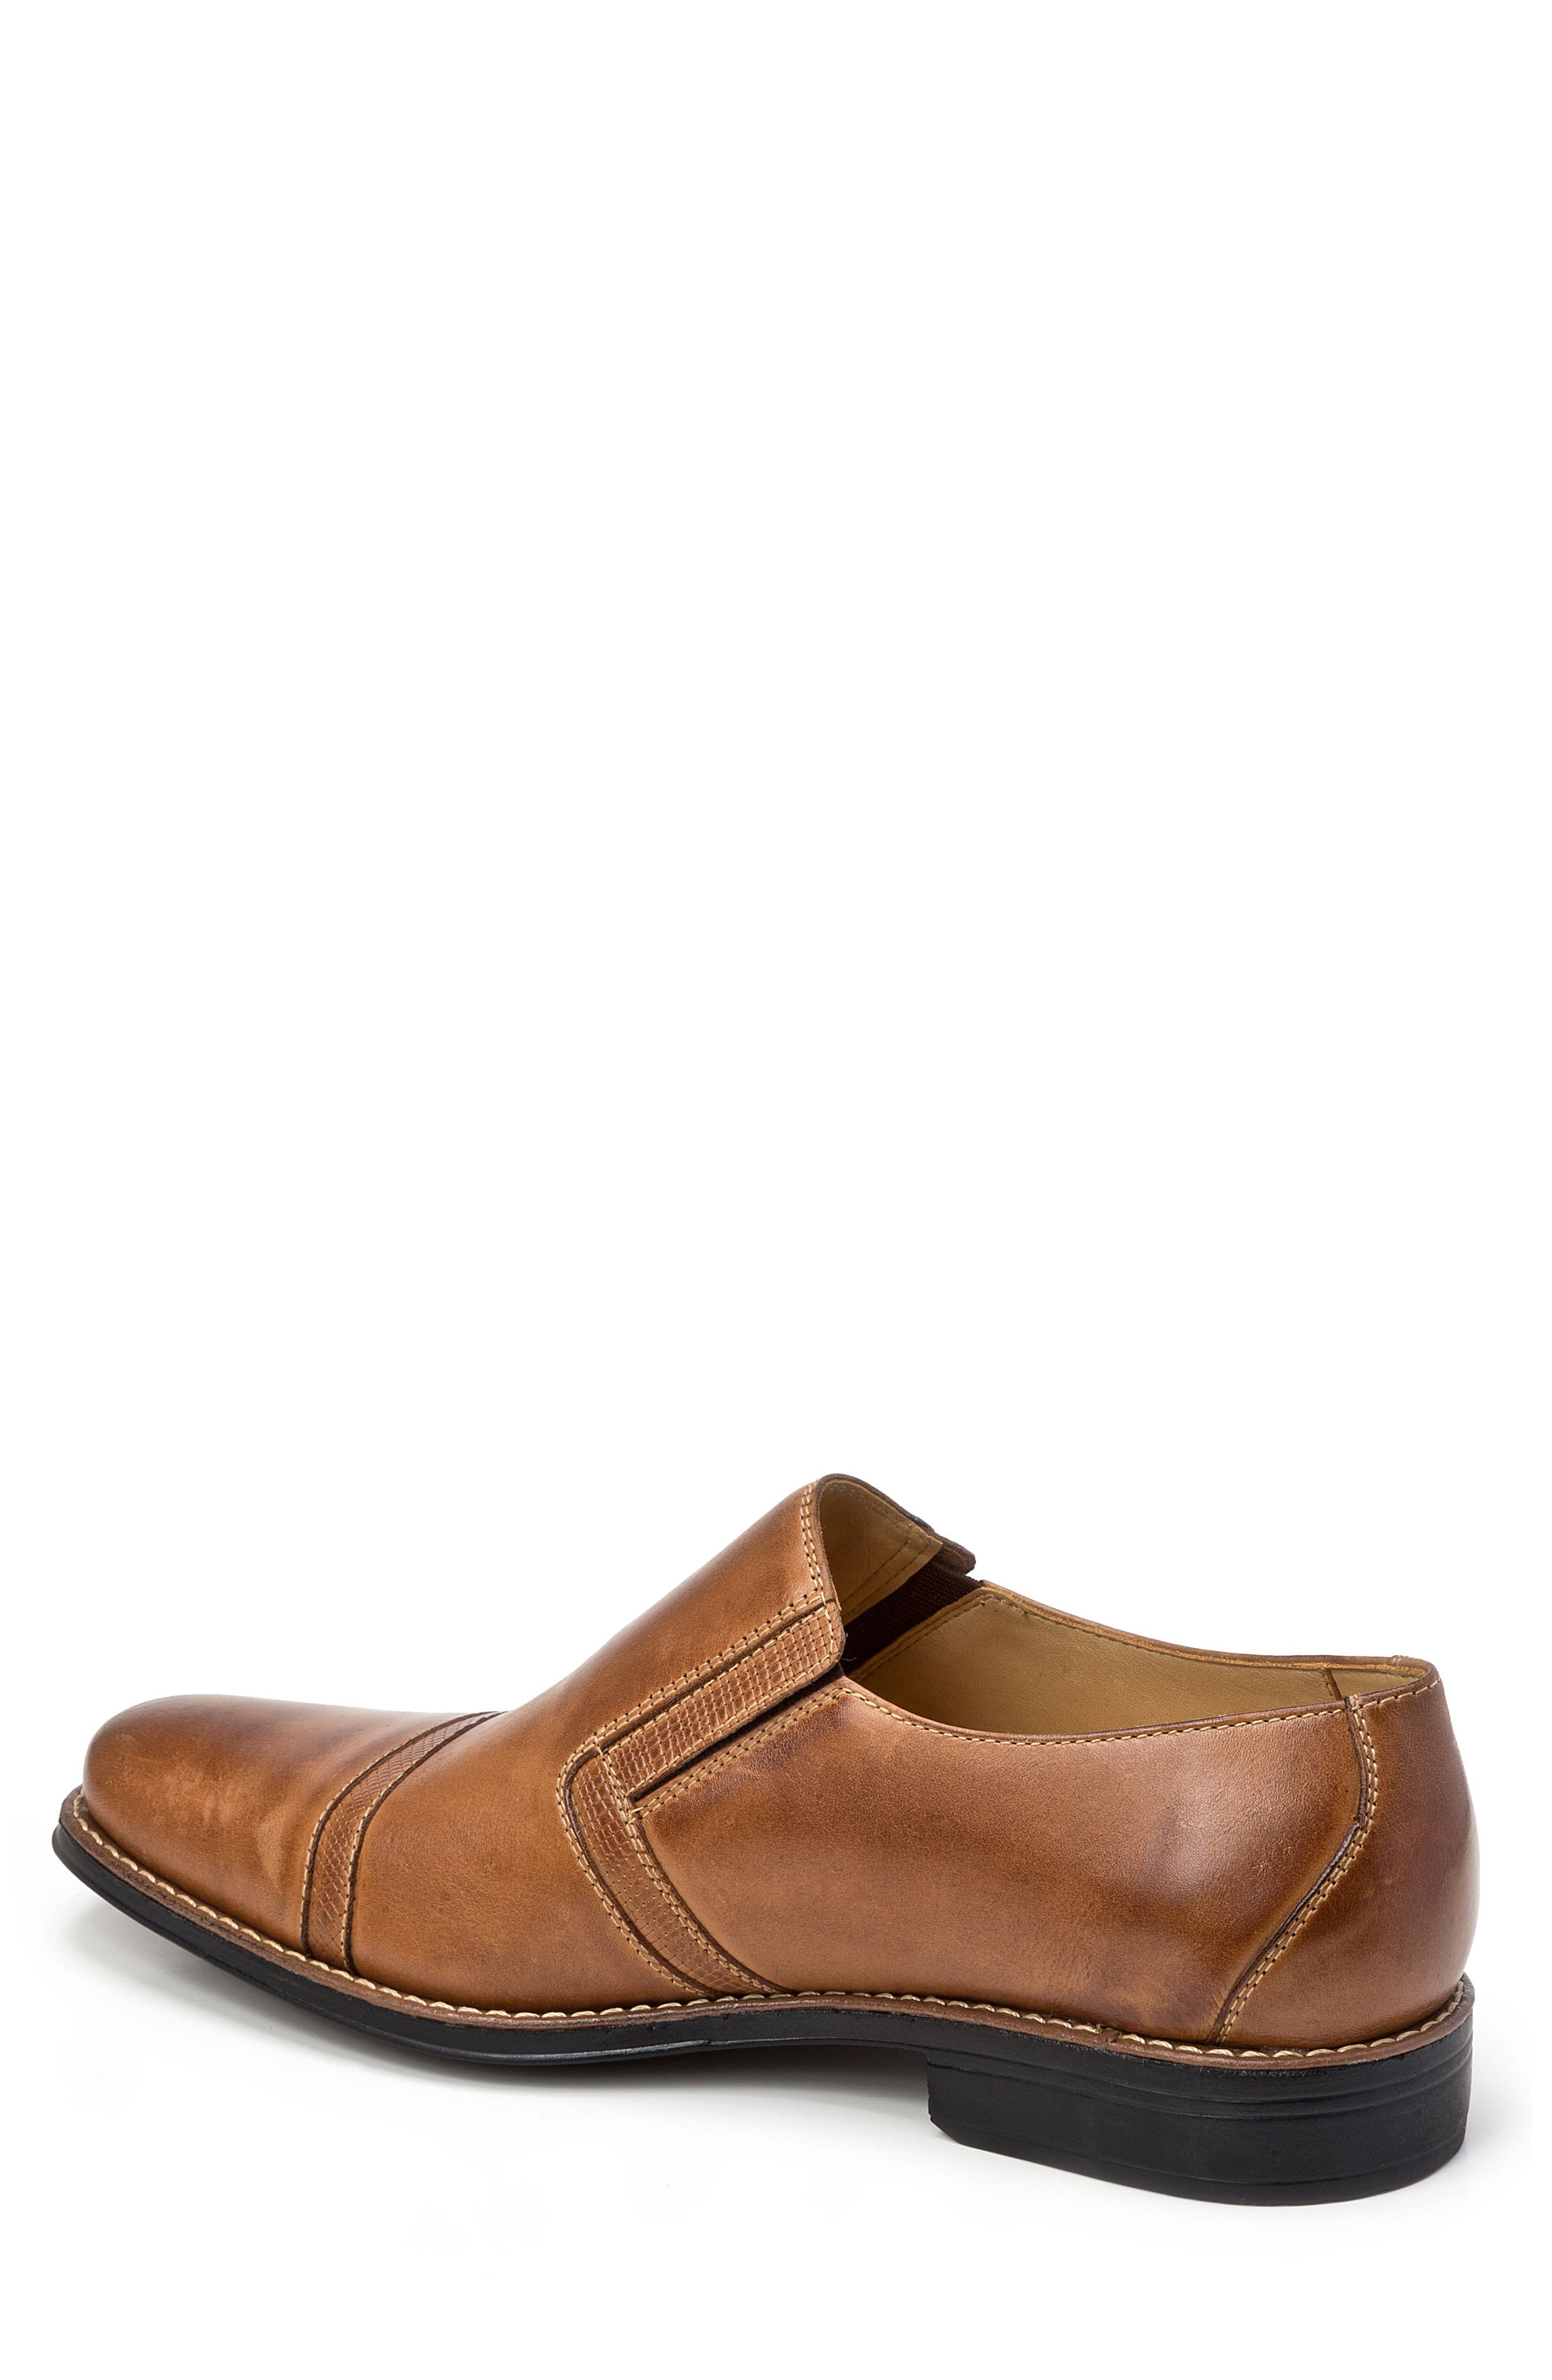 Sebastian Venetian Loafer,                             Alternate thumbnail 2, color,                             TAN LEATHER